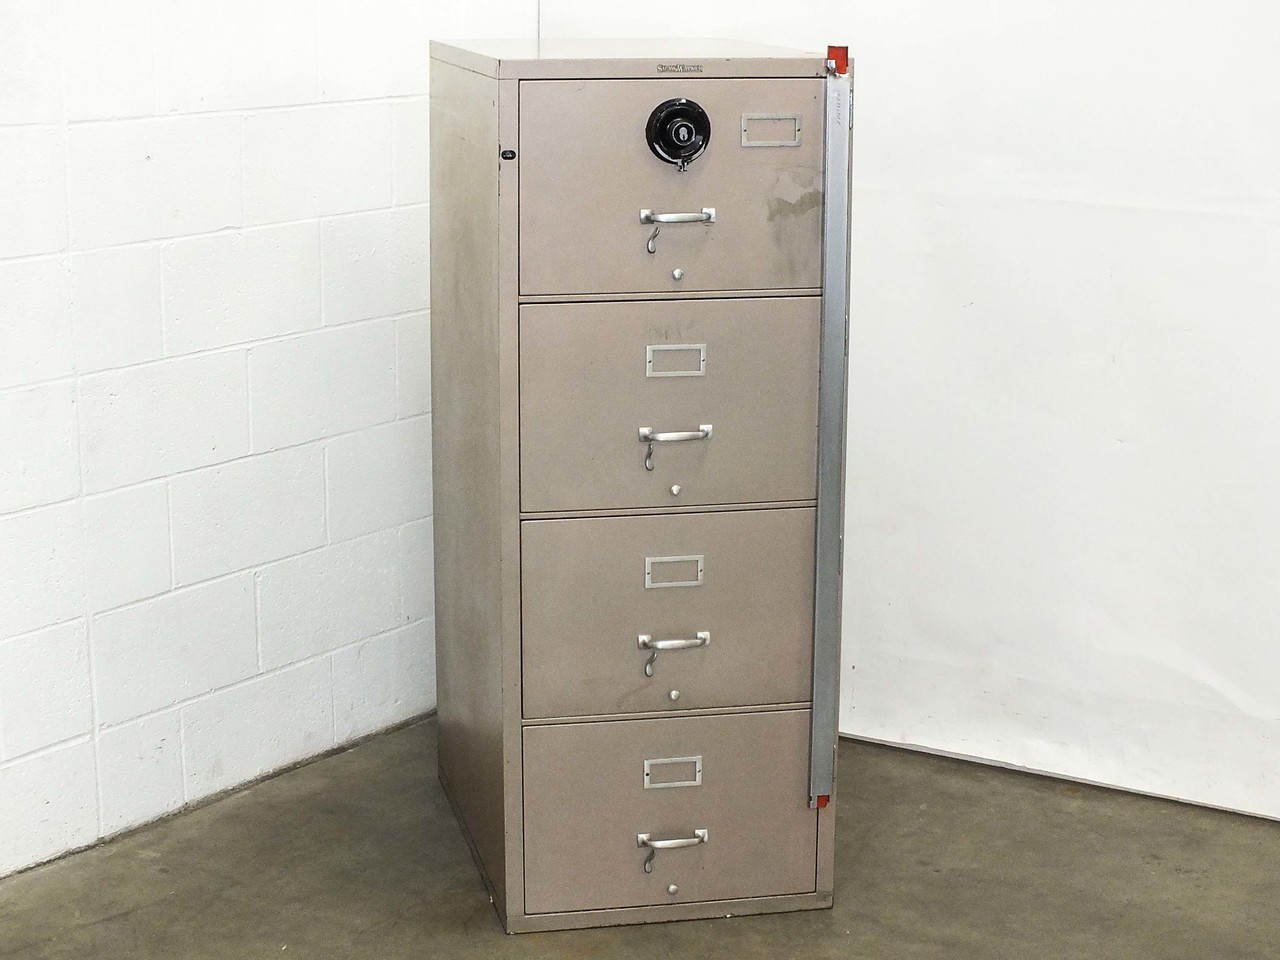 Shaw Walker G1 4 Drawer Insulated Fireproof Filing Cabinet With Combination Lock